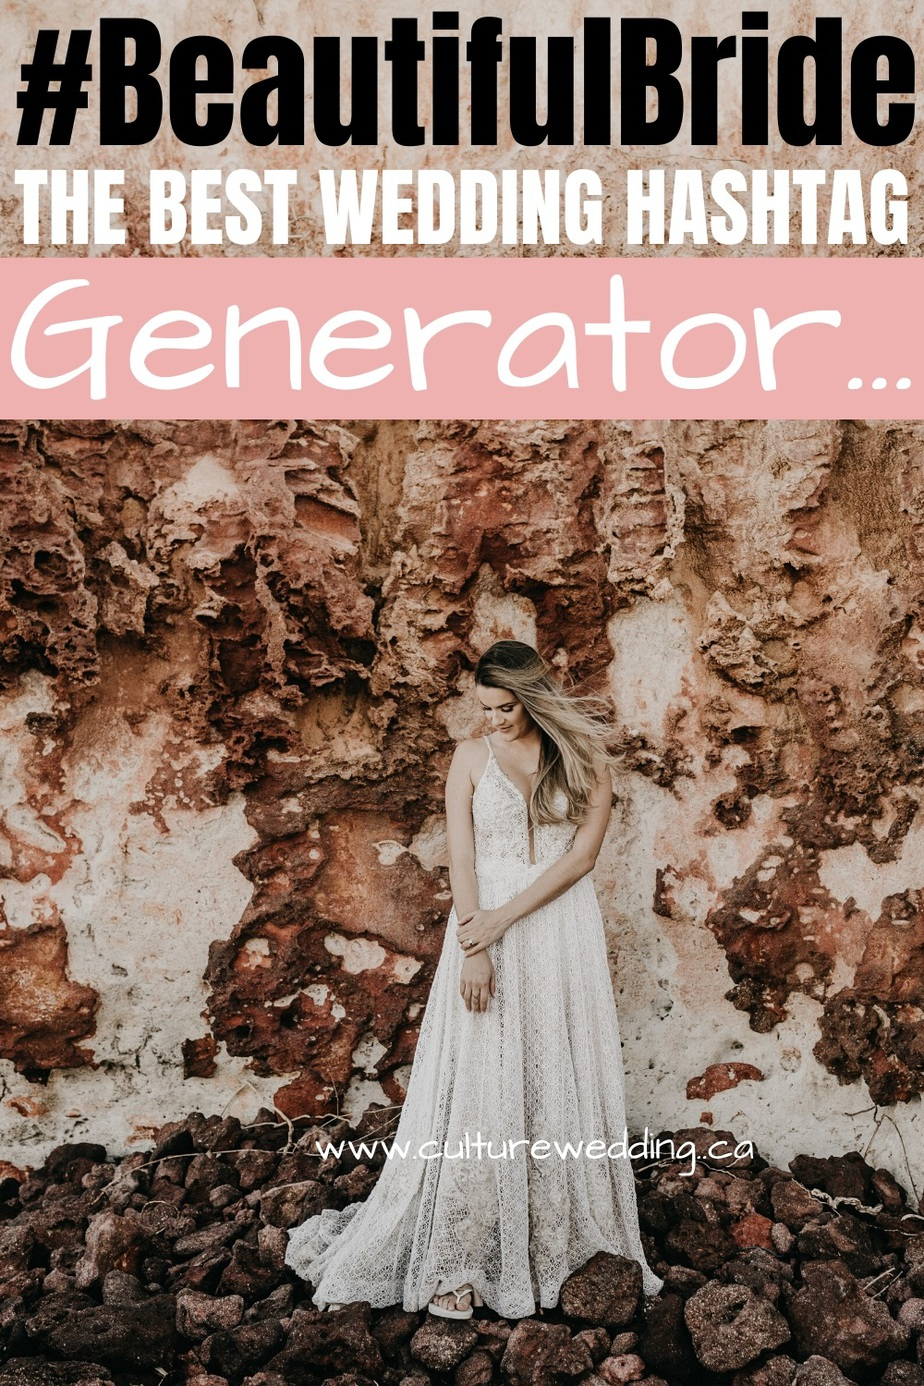 Are you looking for the best wedding hashtag generator? wedding hashtag ideas generator that are all free to use. We have included a few wedding hashtag ideas you can use for your best day. Funny wedding hashtags sets a good mood for your wedding #weddinghashtags #weddinghashtagideas #weddingideas